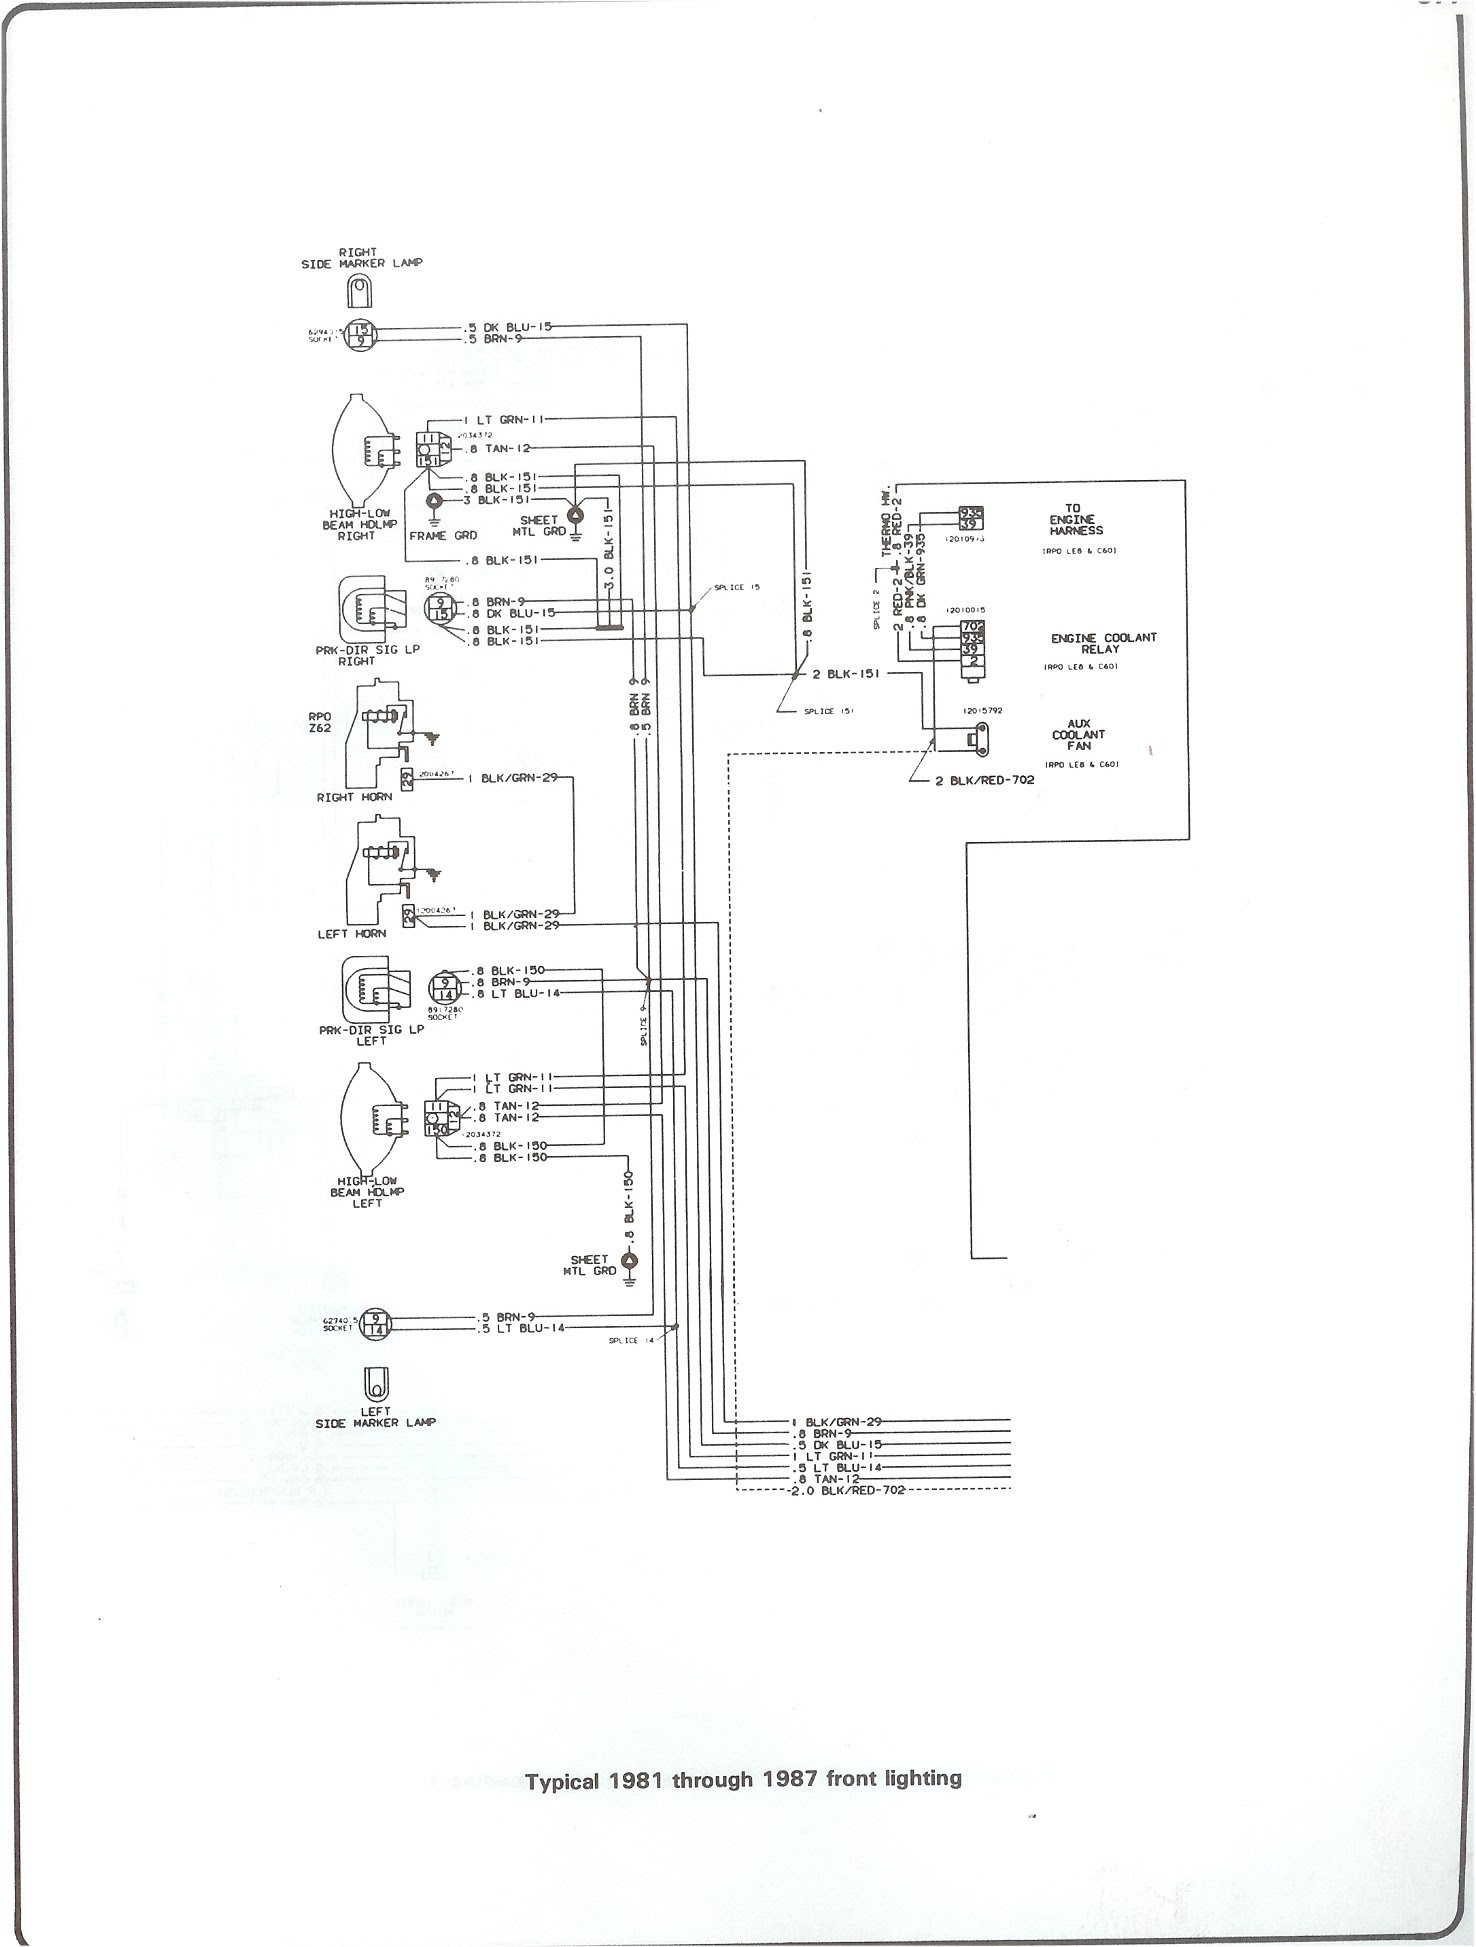 1984 Chevy K10 Wiring Diagram Oldsmobile Alero Stereo Wiring Diagram Wiring Diagram Schematics